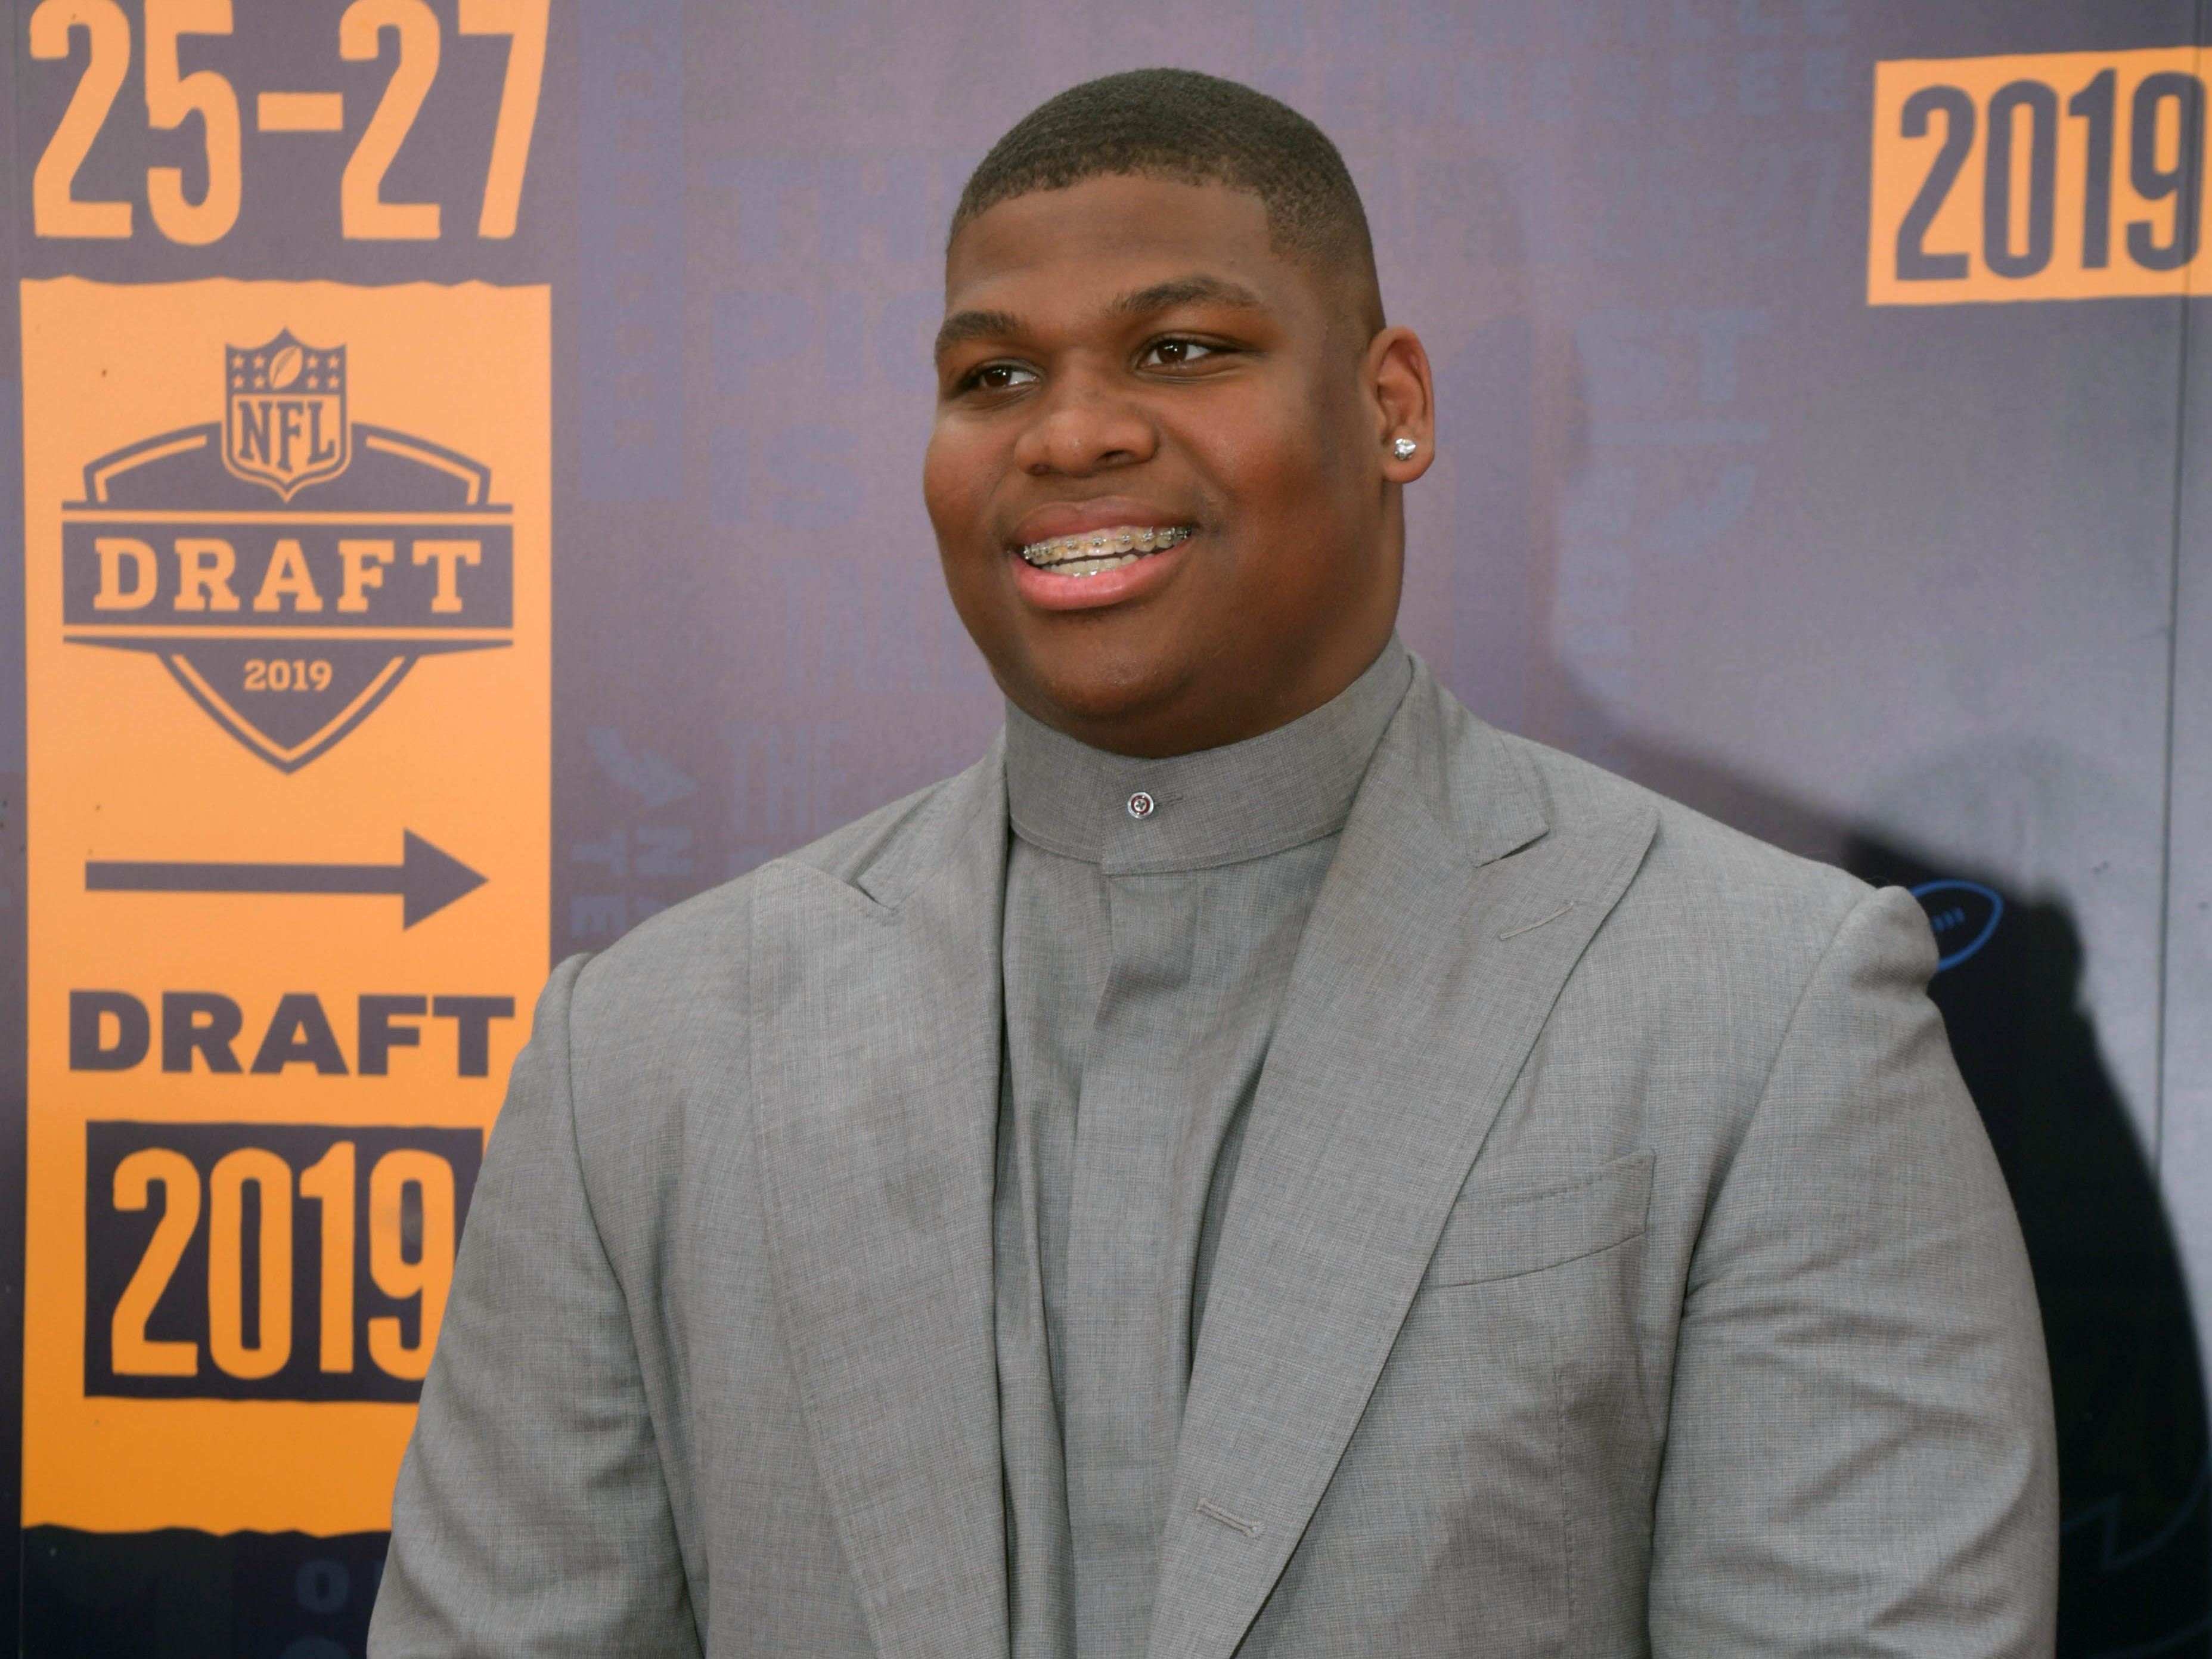 Quinnen Williams (from Alabama) on the red carpet prior to the first round of the 2019 NFL draft in Downtown Nashville.